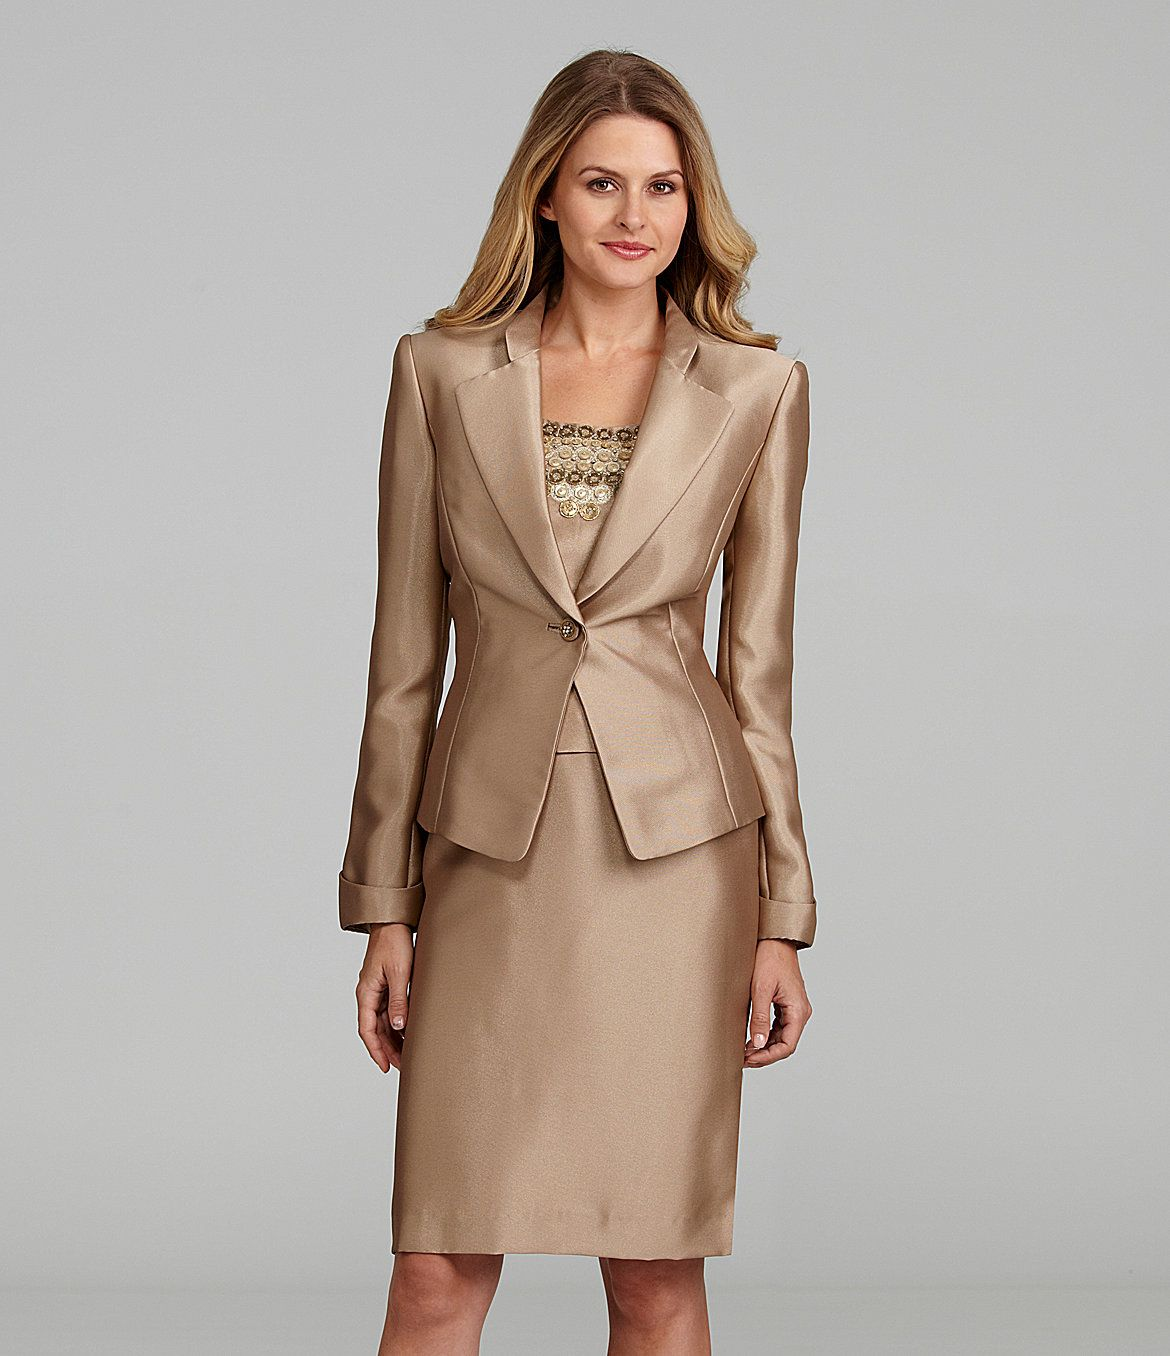 d41ee82dc592 Tahari by ASL Shantung 3-Piece Skirted Suit | Dillards.com | Pant ...